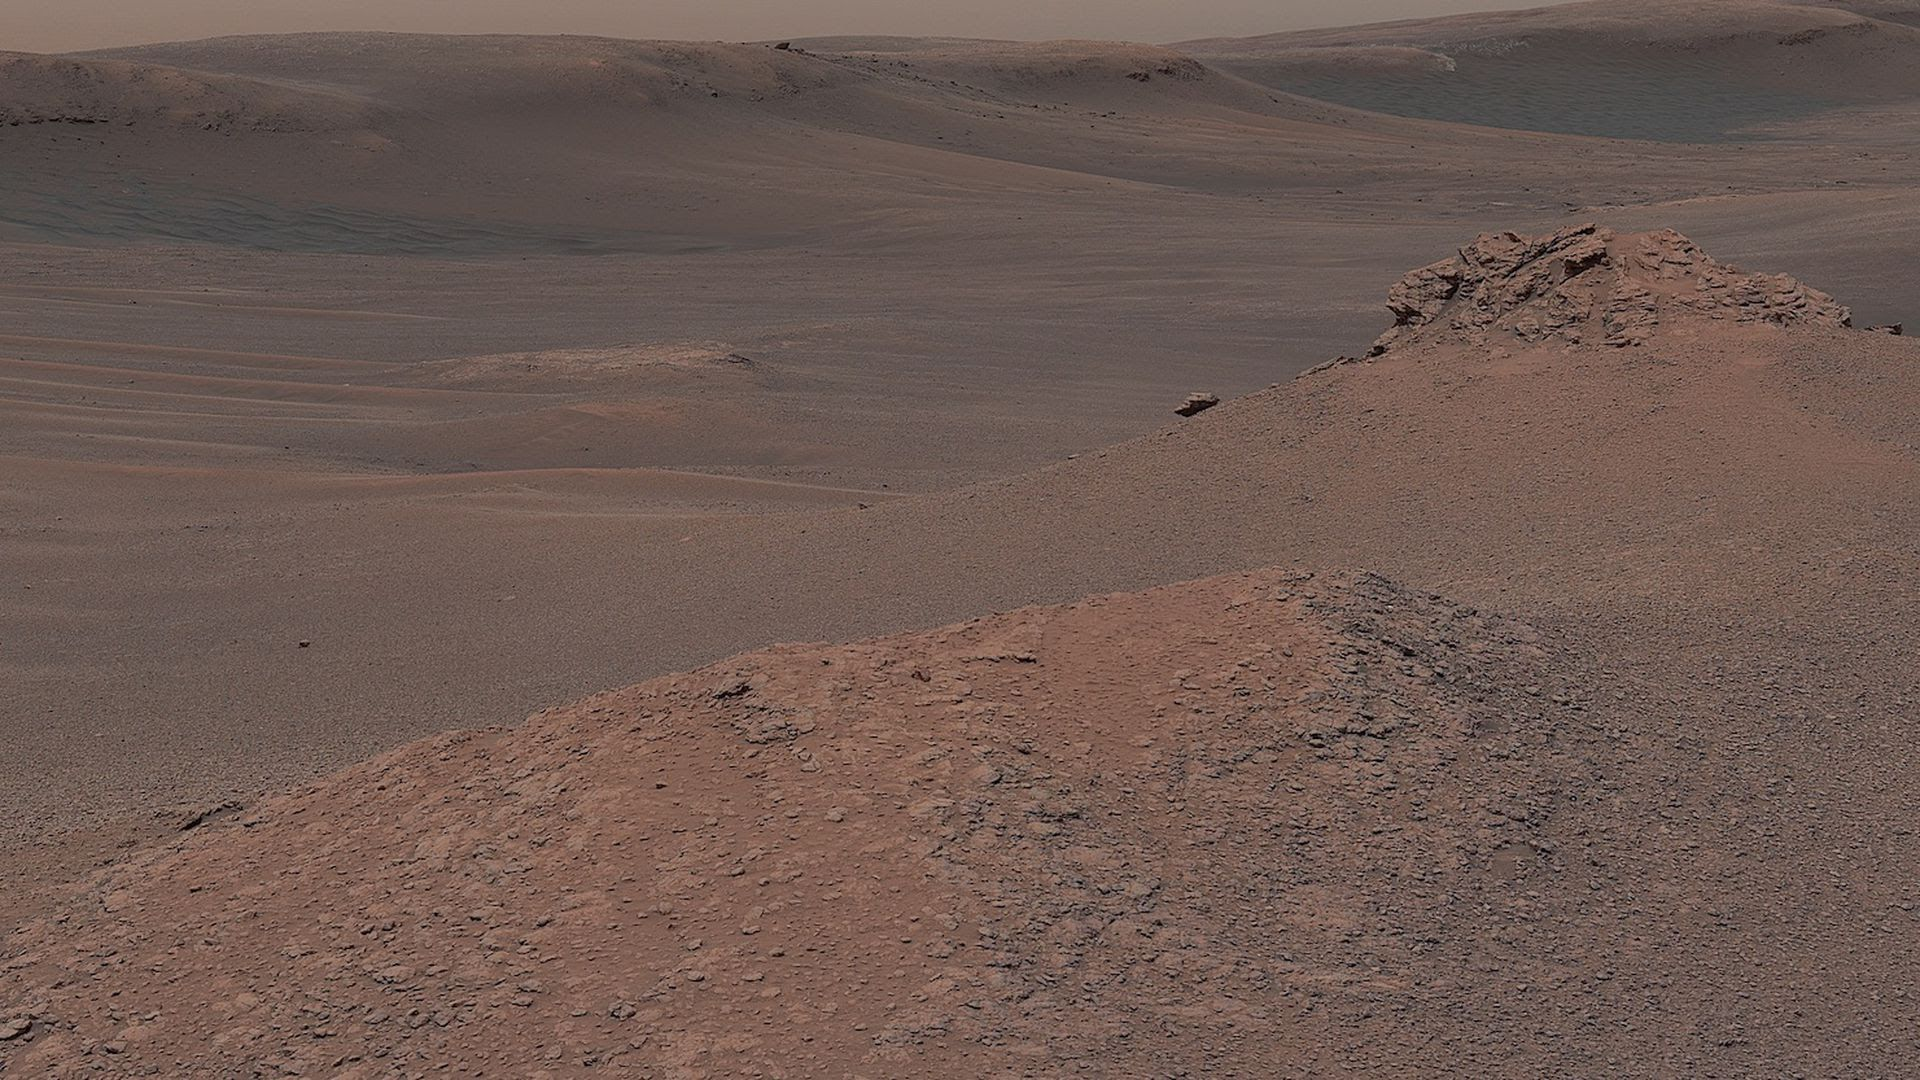 Mars as seen by the Curiosity rover